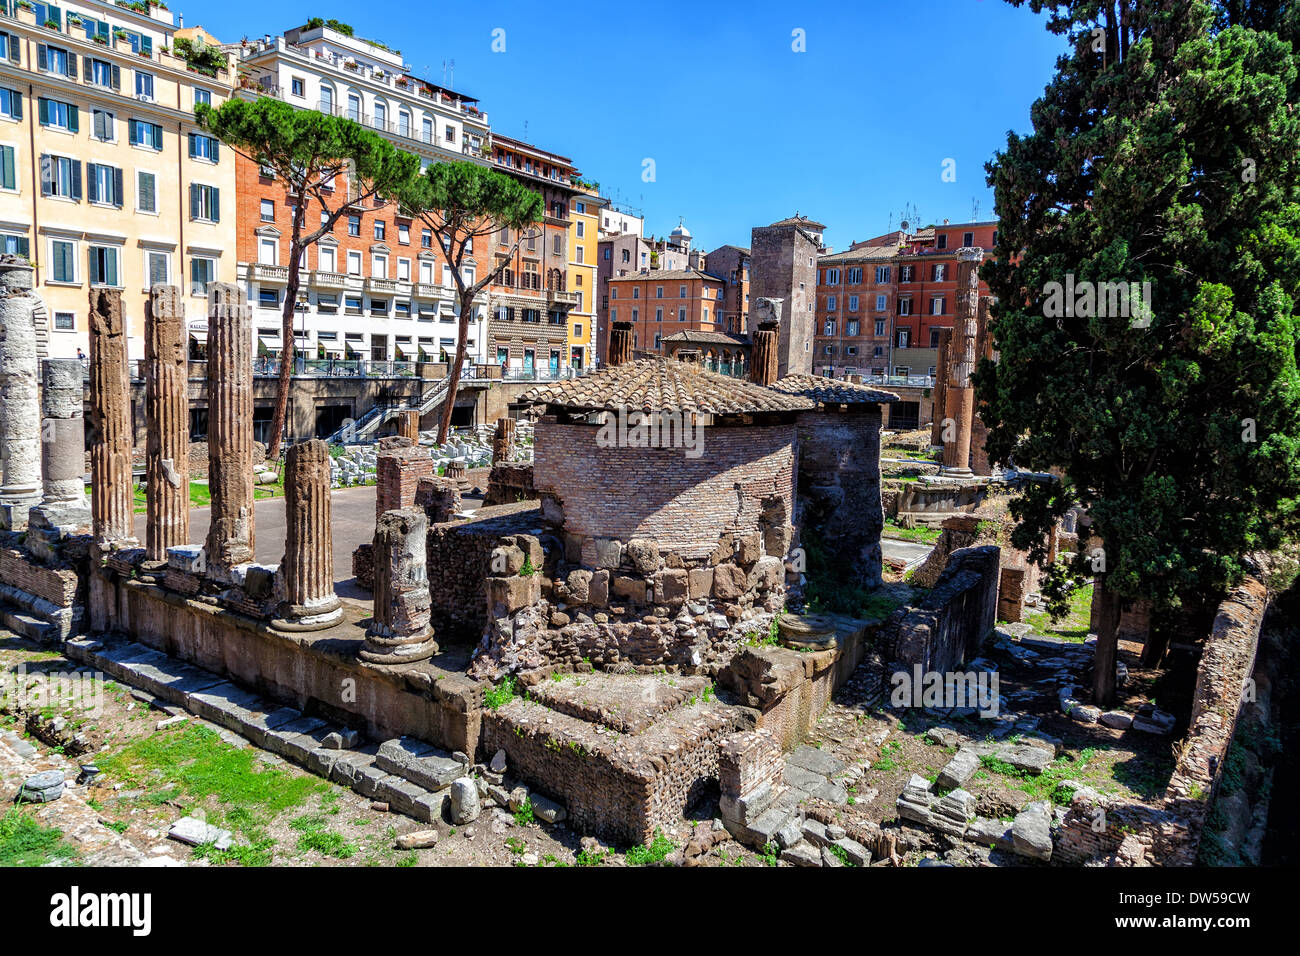 Archaeological excavations of ancient buildings in the center of Rome Stock Photo